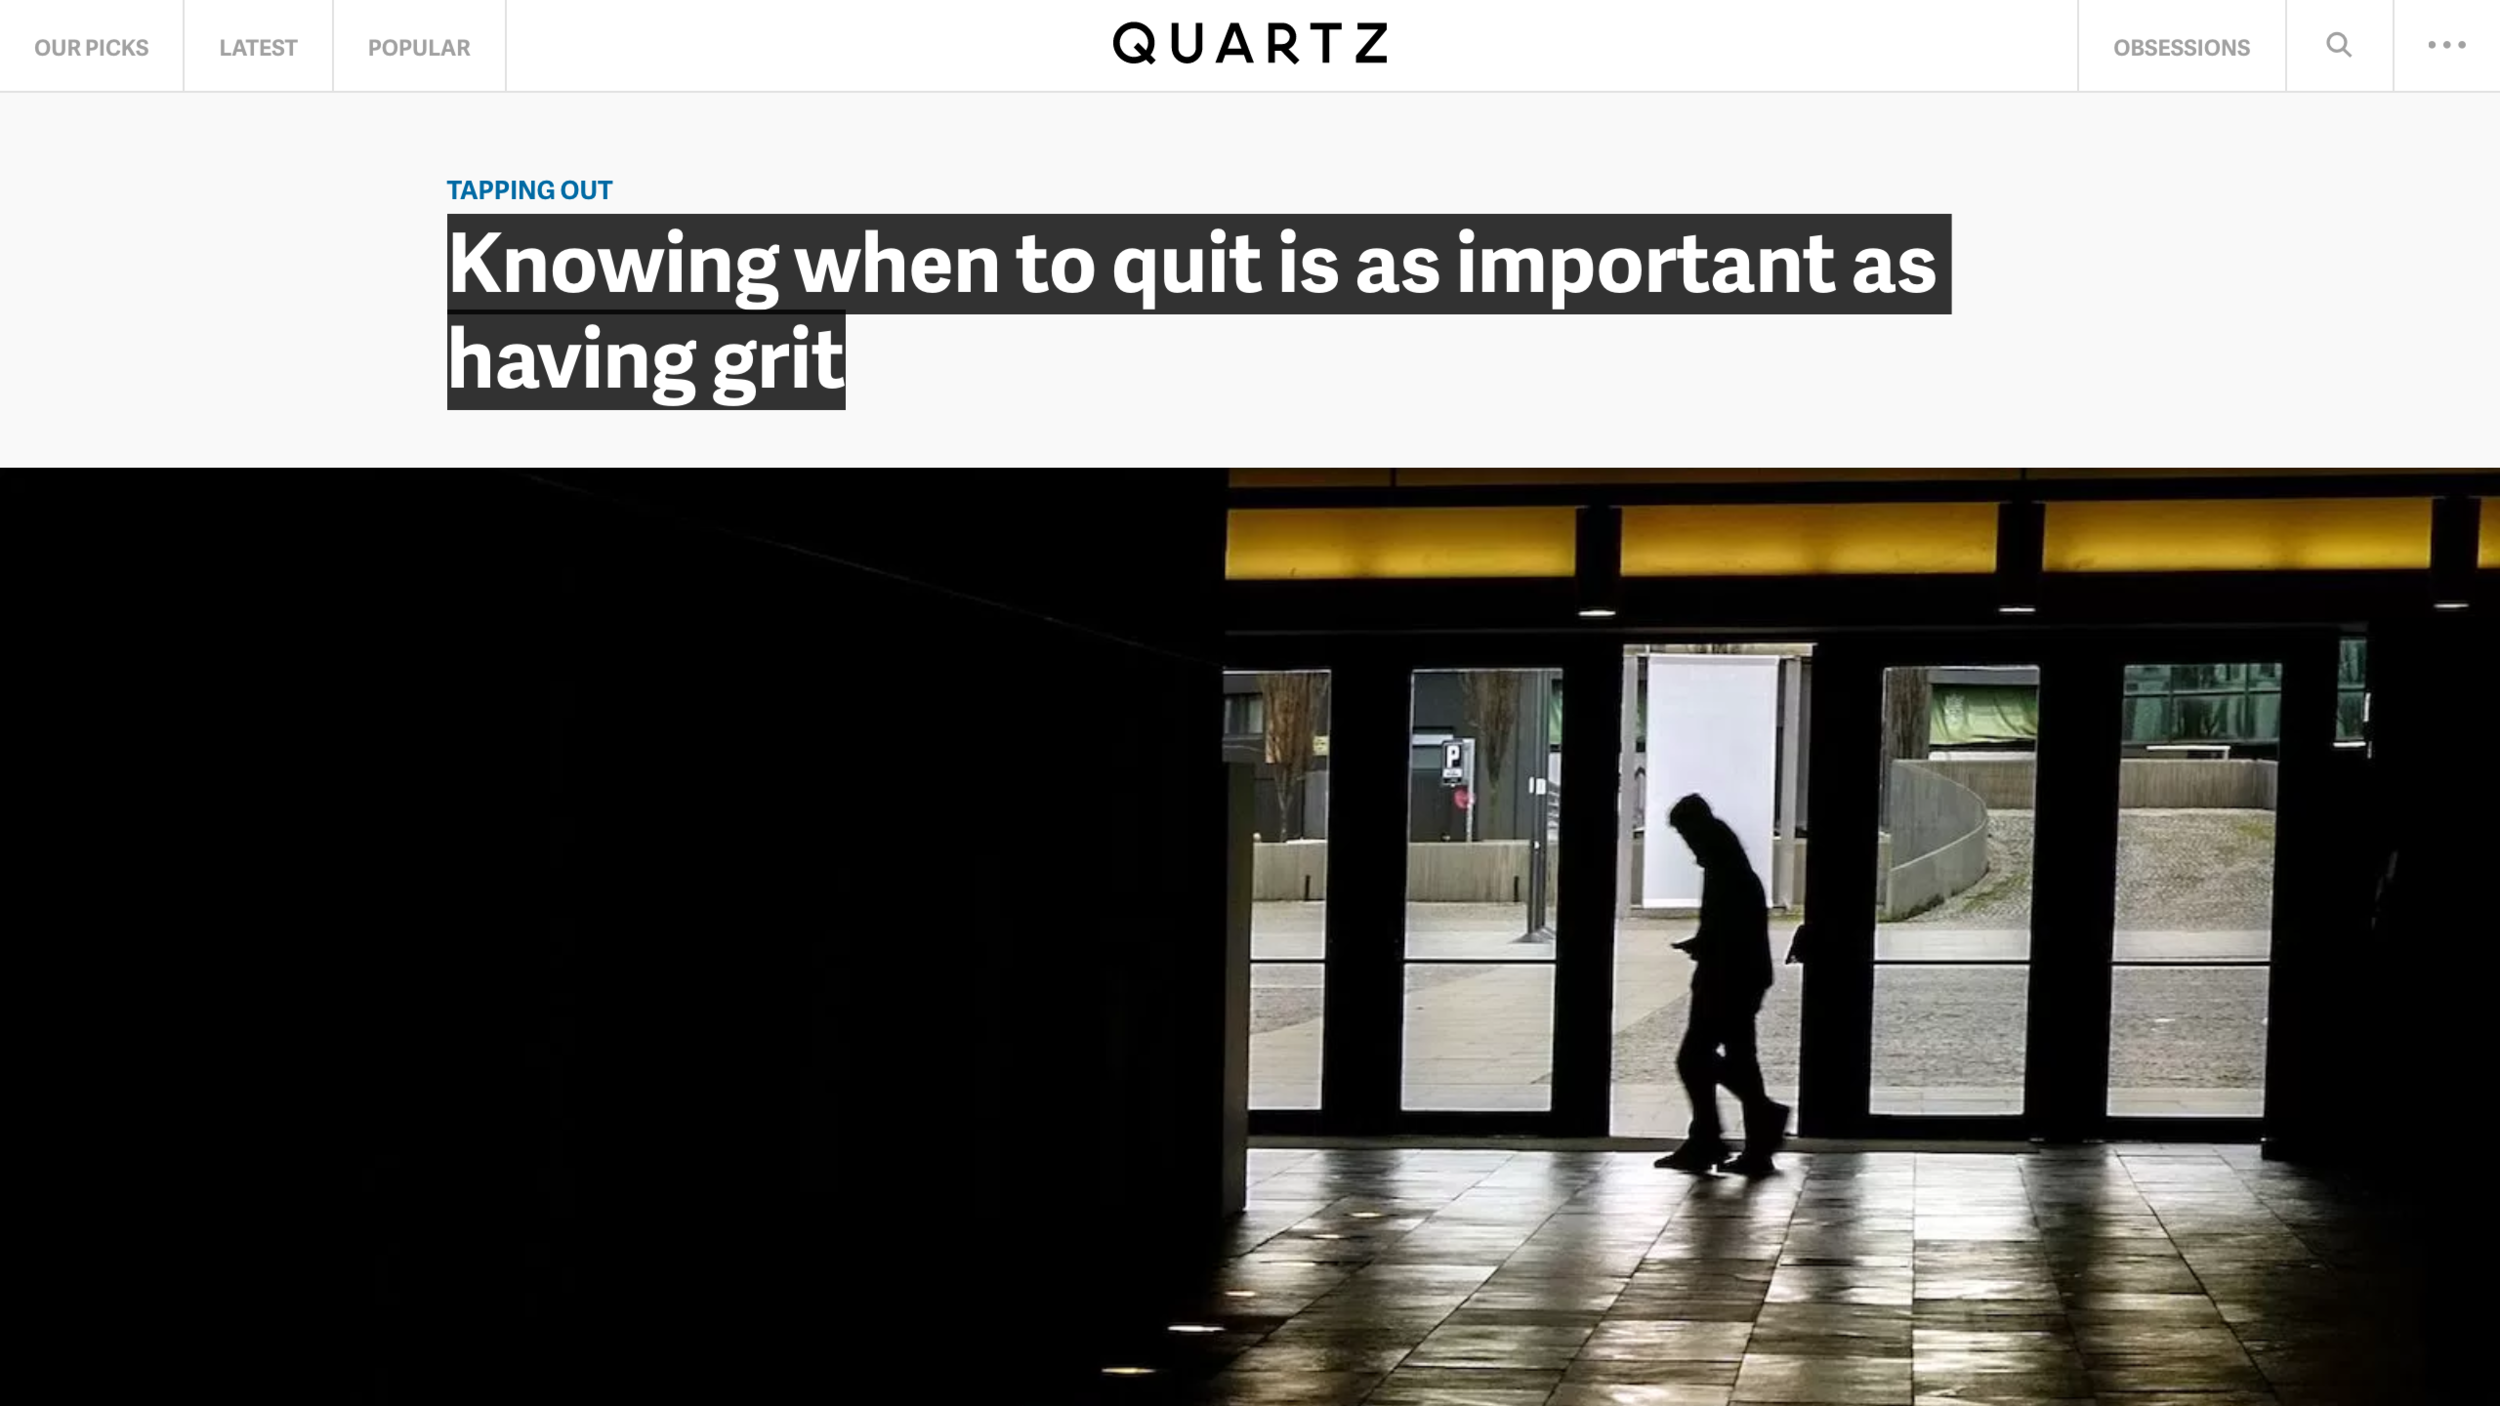 Susan David: Knowing When to Quit Is as Important as Having Grit